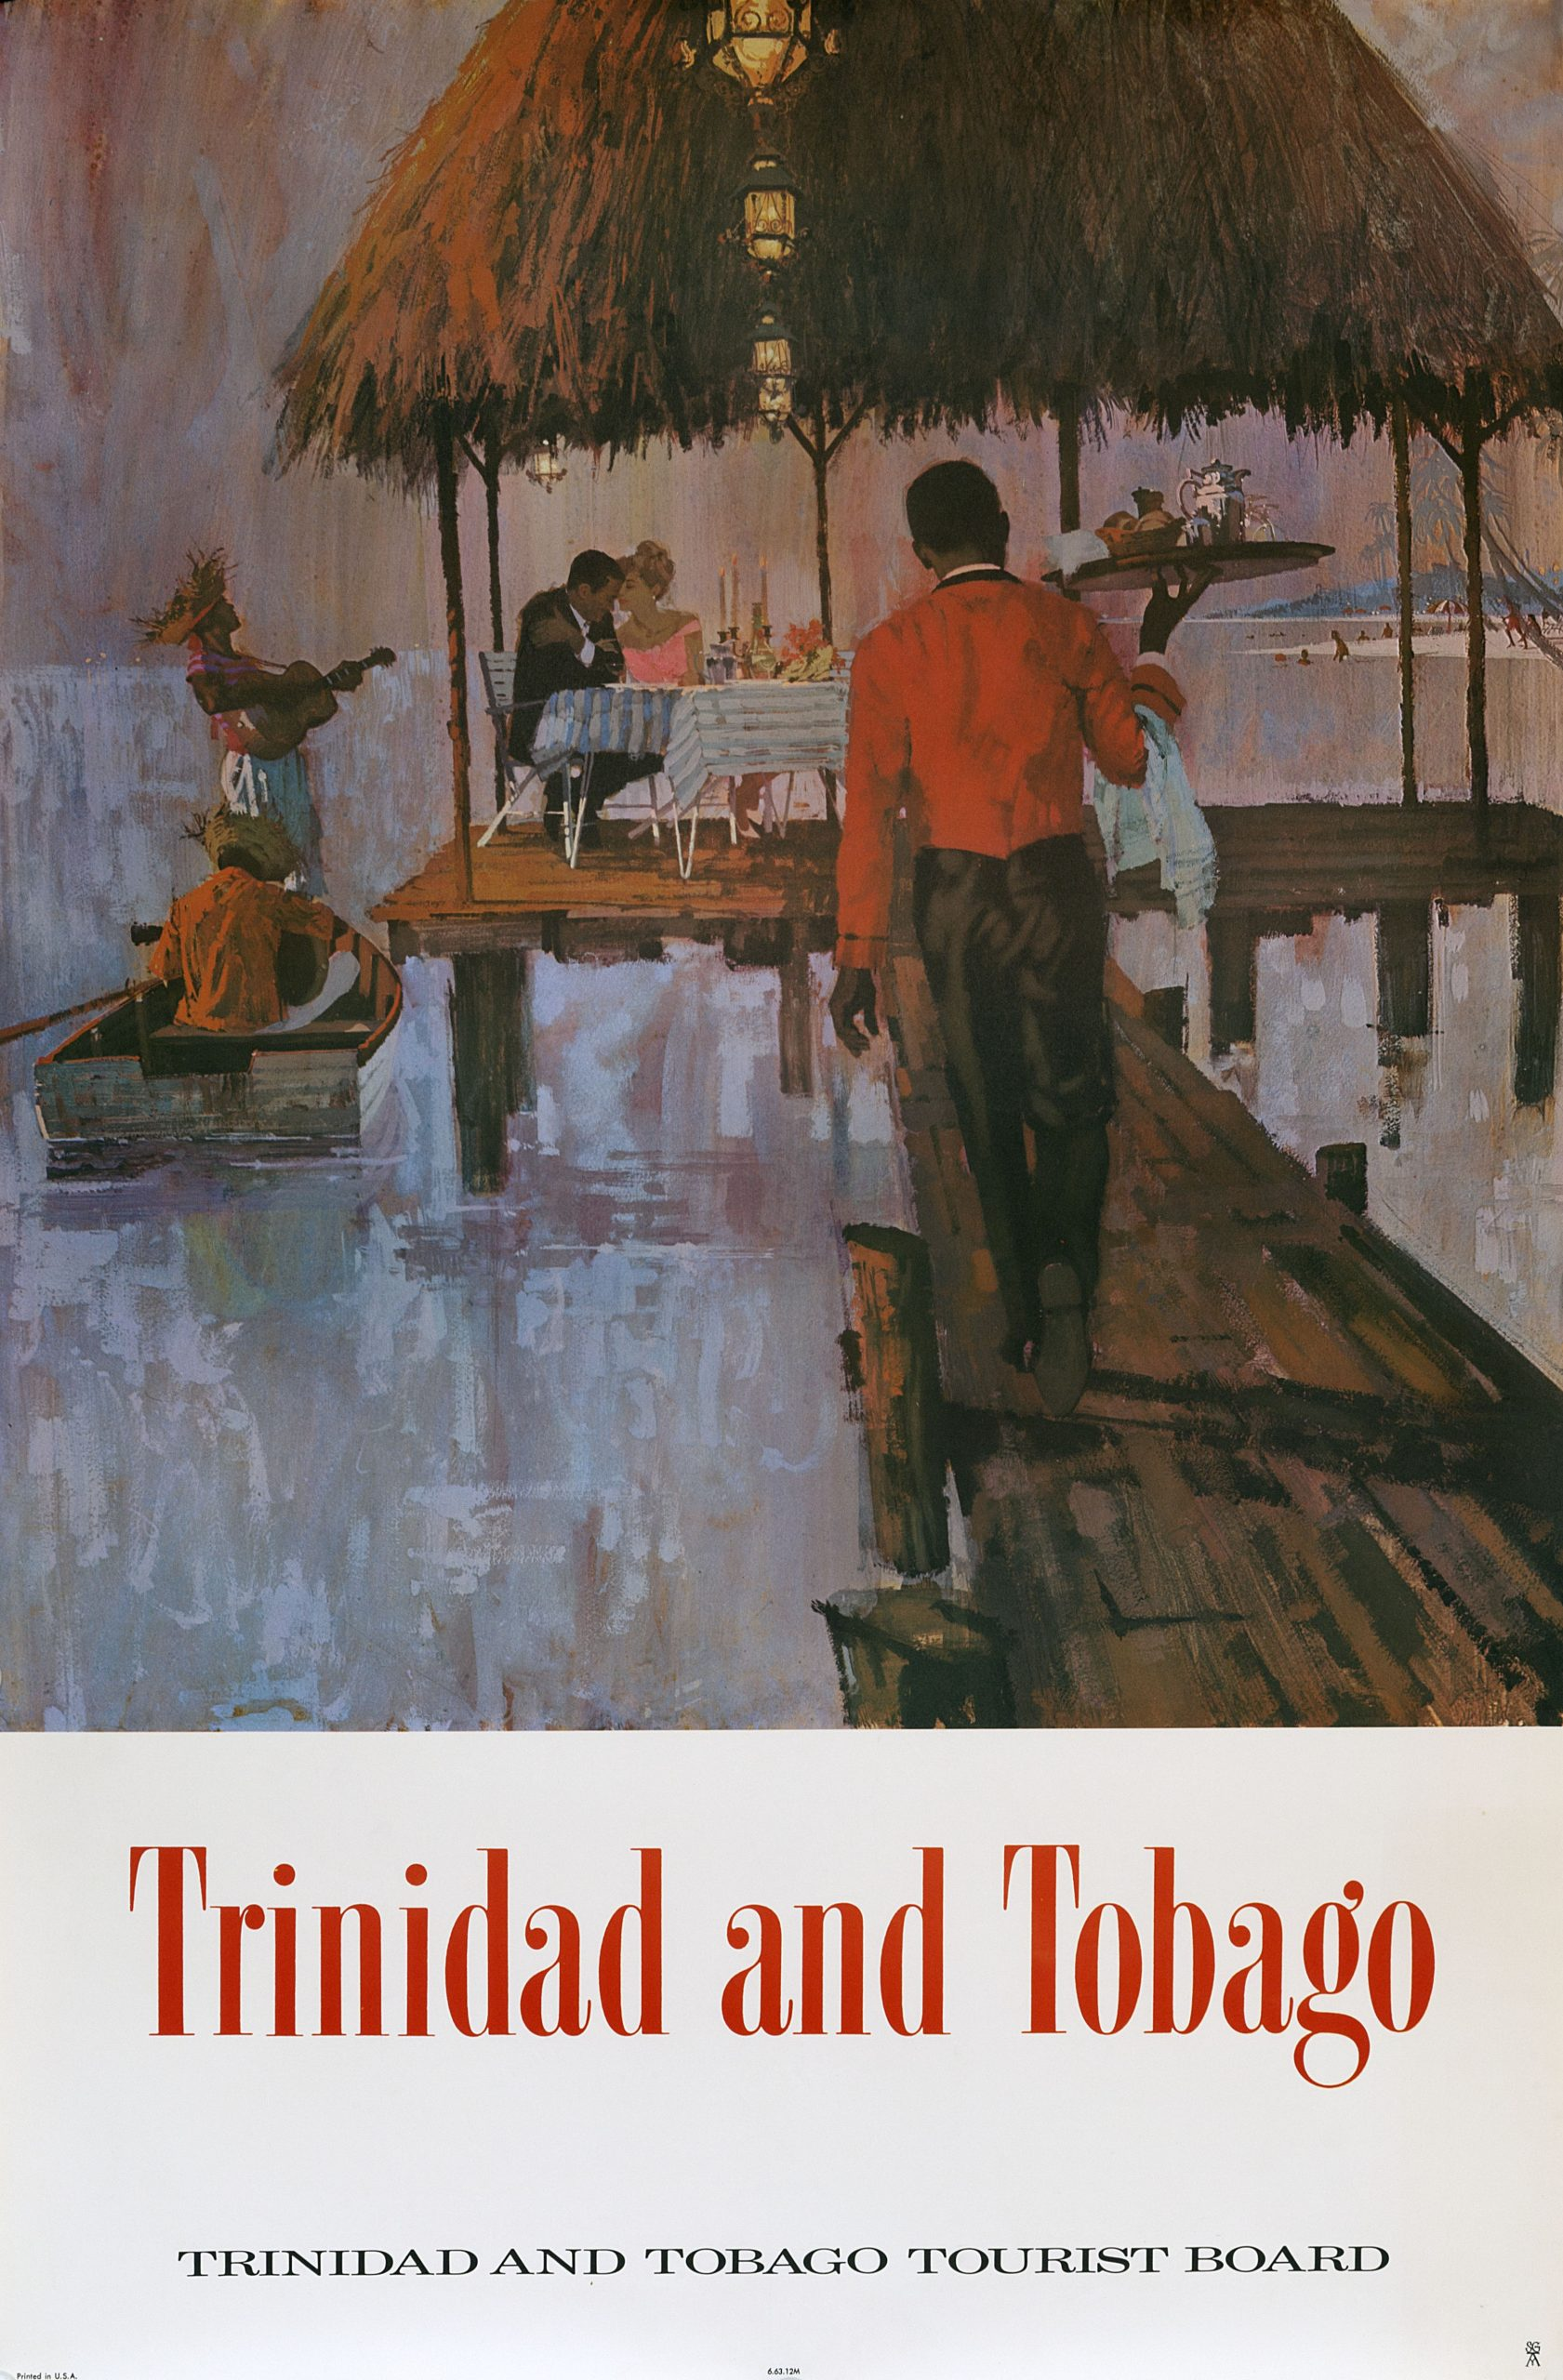 Trinidad and Tobago poster